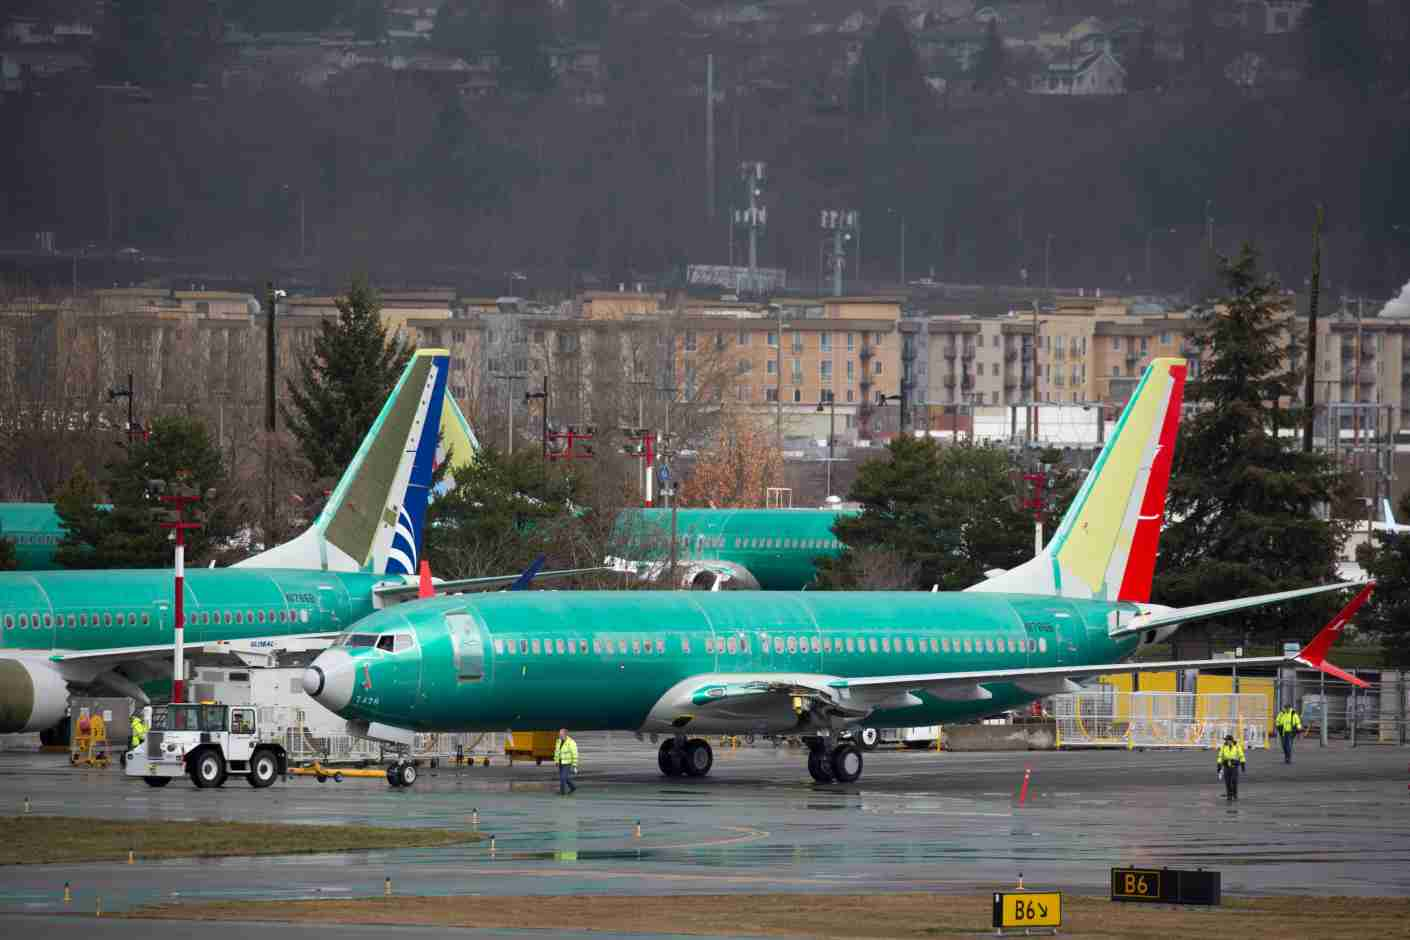 """Boeing 737 airplanes are pictured on the tarmac at the Boeing Renton Factory in Renton, Washington on March 12, 2019. - The US said there is """"no basis"""" to ground Boeing 737 MAX airplanes, after a second deadly crash involving the model in less than five months prompted governments worldwide to ban the aircraft. """"Thus far, our review shows no systemic performance issues and provides no basis to order grounding the aircraft,"""" Federal Aviation Administration (FAA) chief Daniel Elwell said in a statement. (Photo by Jason Redmond / AFP) (Photo credit should read JASON REDMOND/AFP/Getty Images)"""